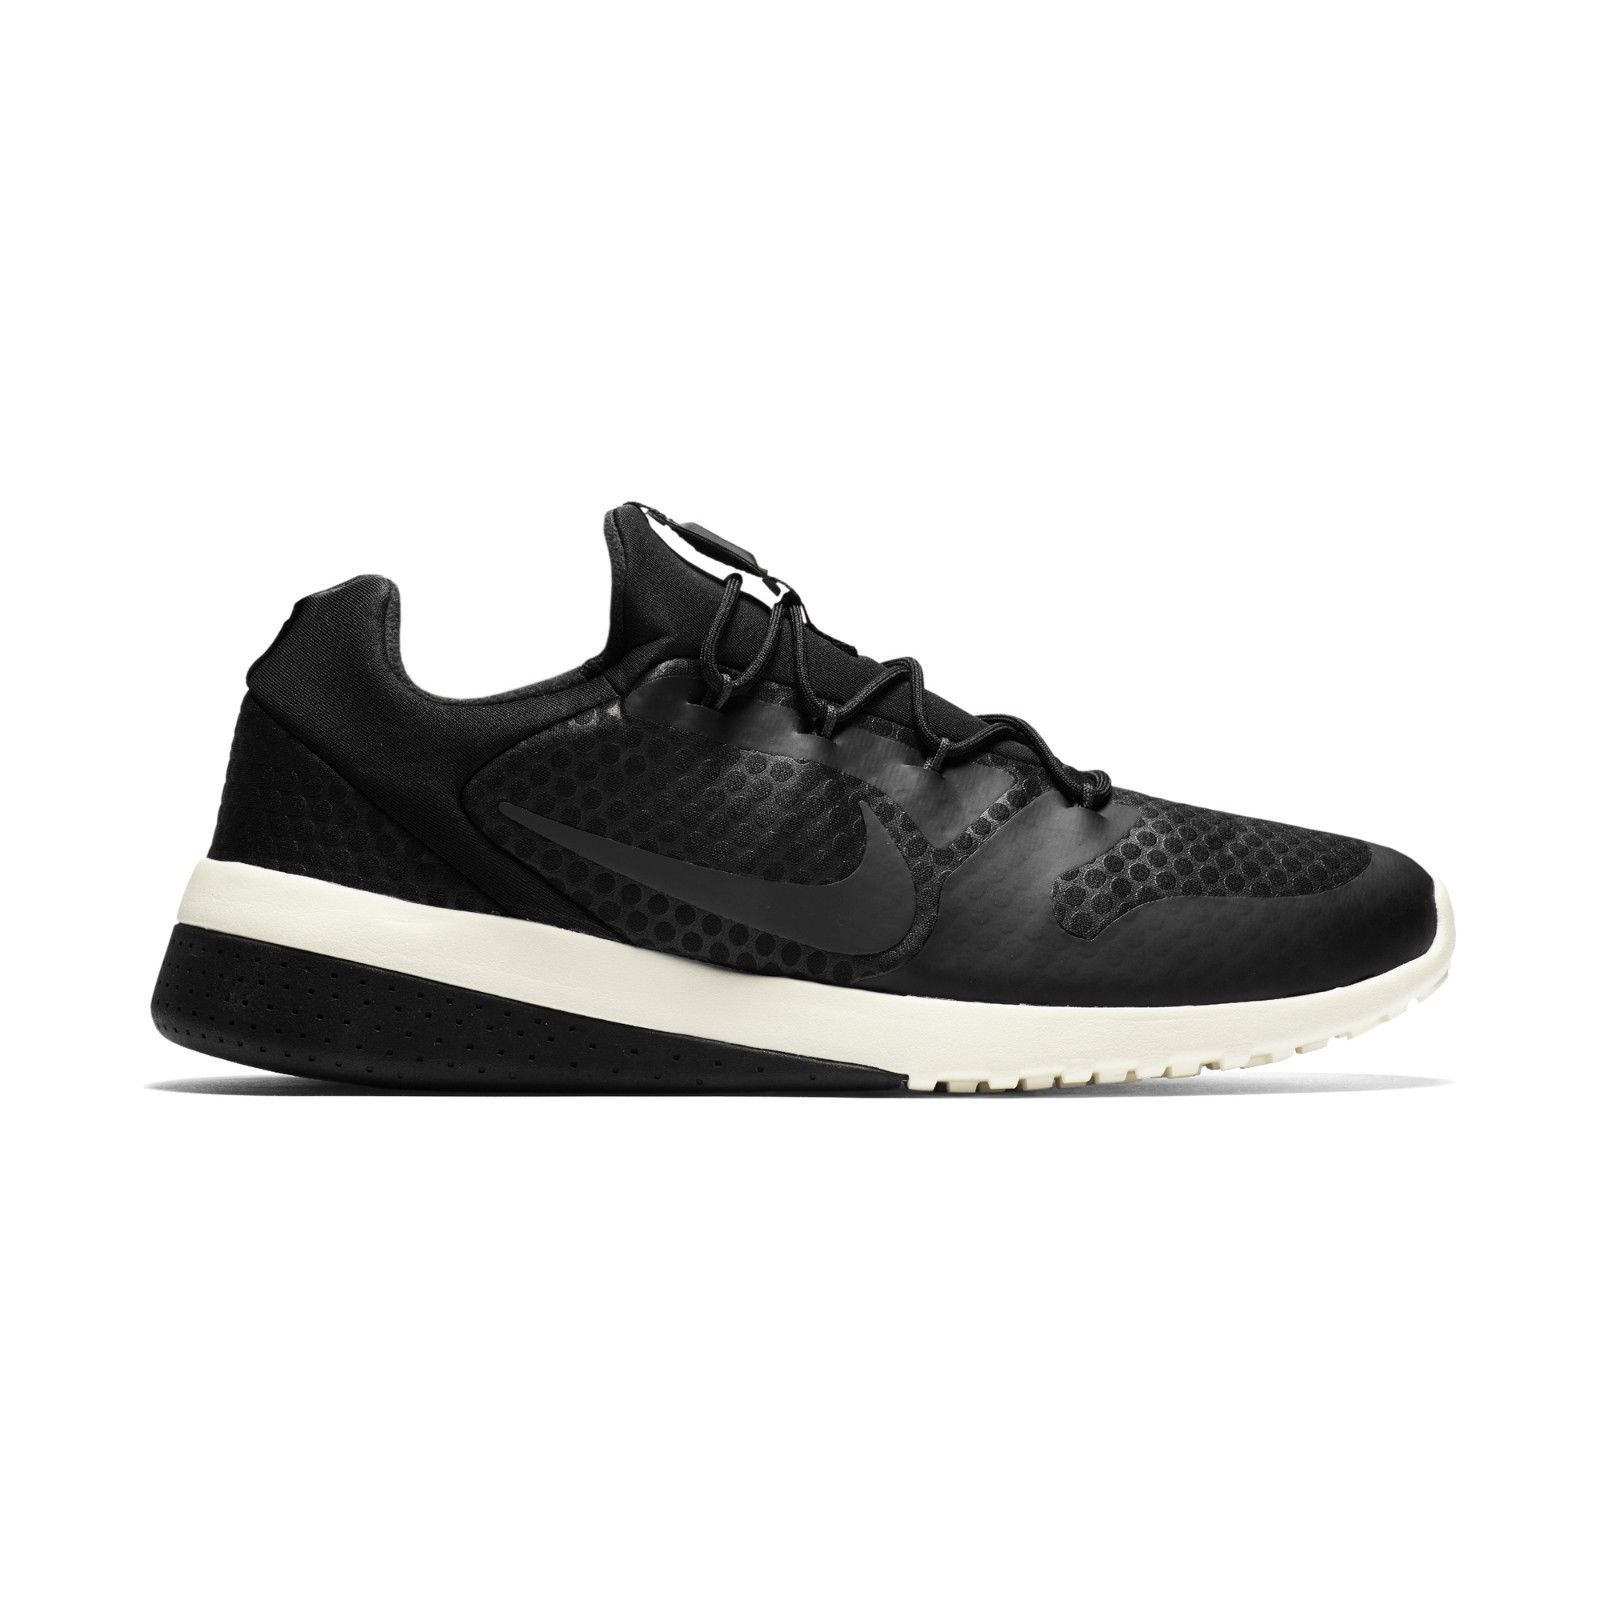 Primary image for Men's Nike CK Racer 916780 005  Black Training Running Shoes